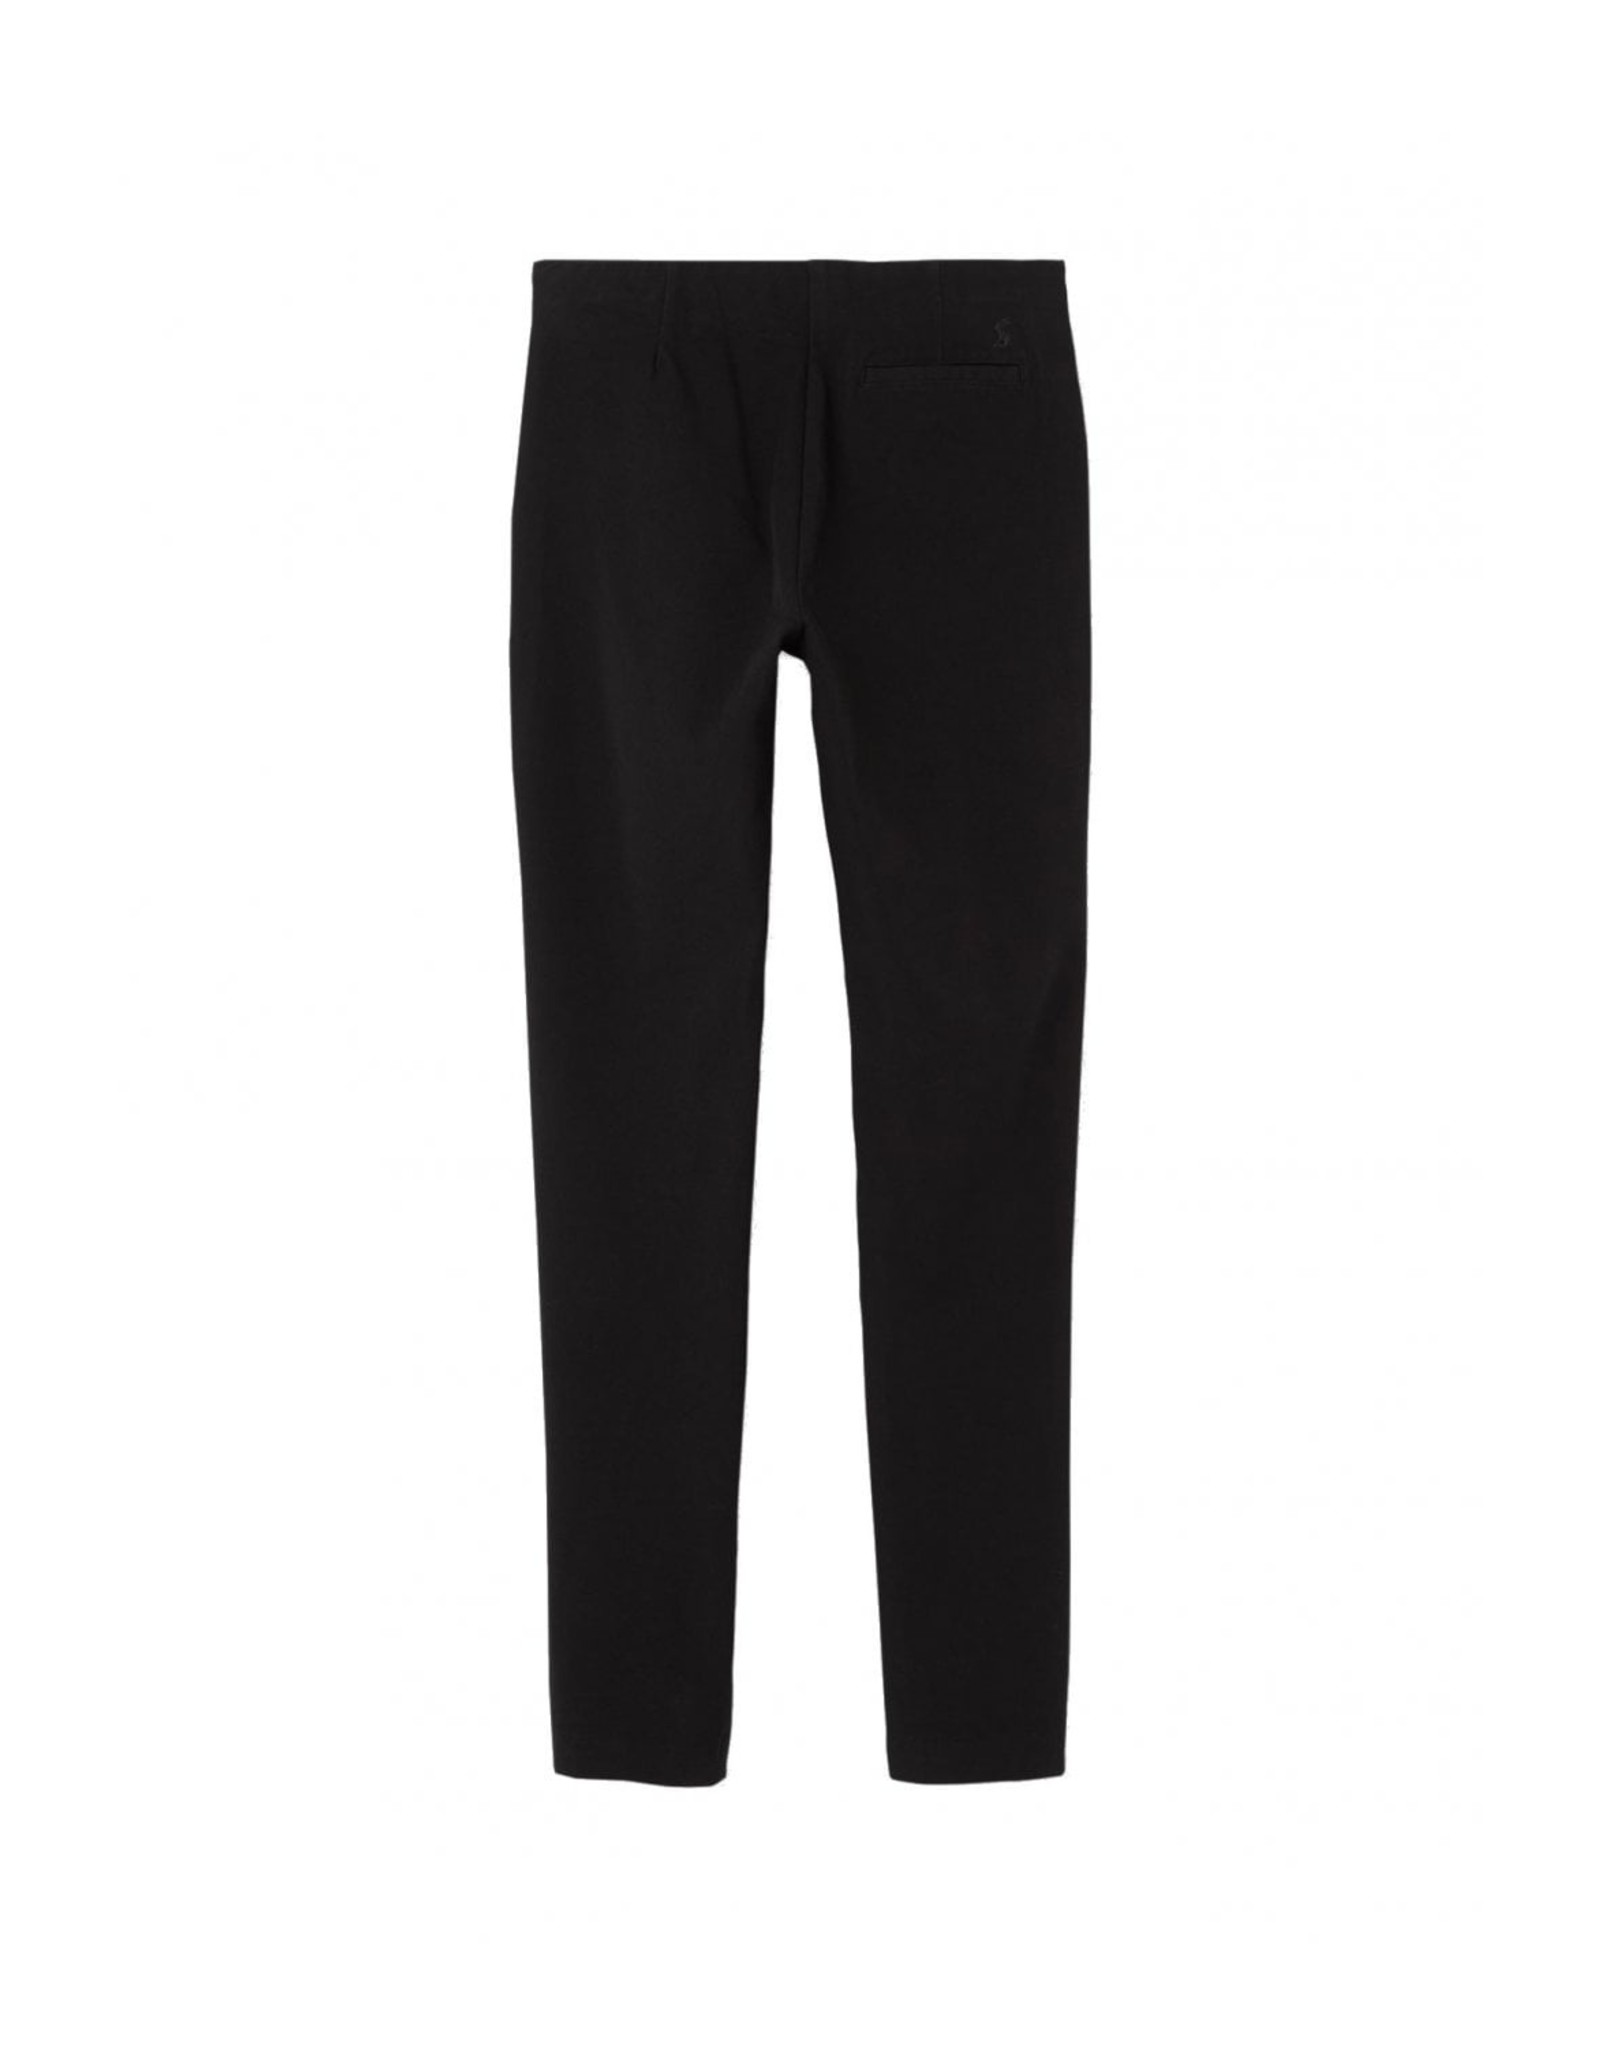 Joules Joules Hepworth Pull On Stretch Trouser